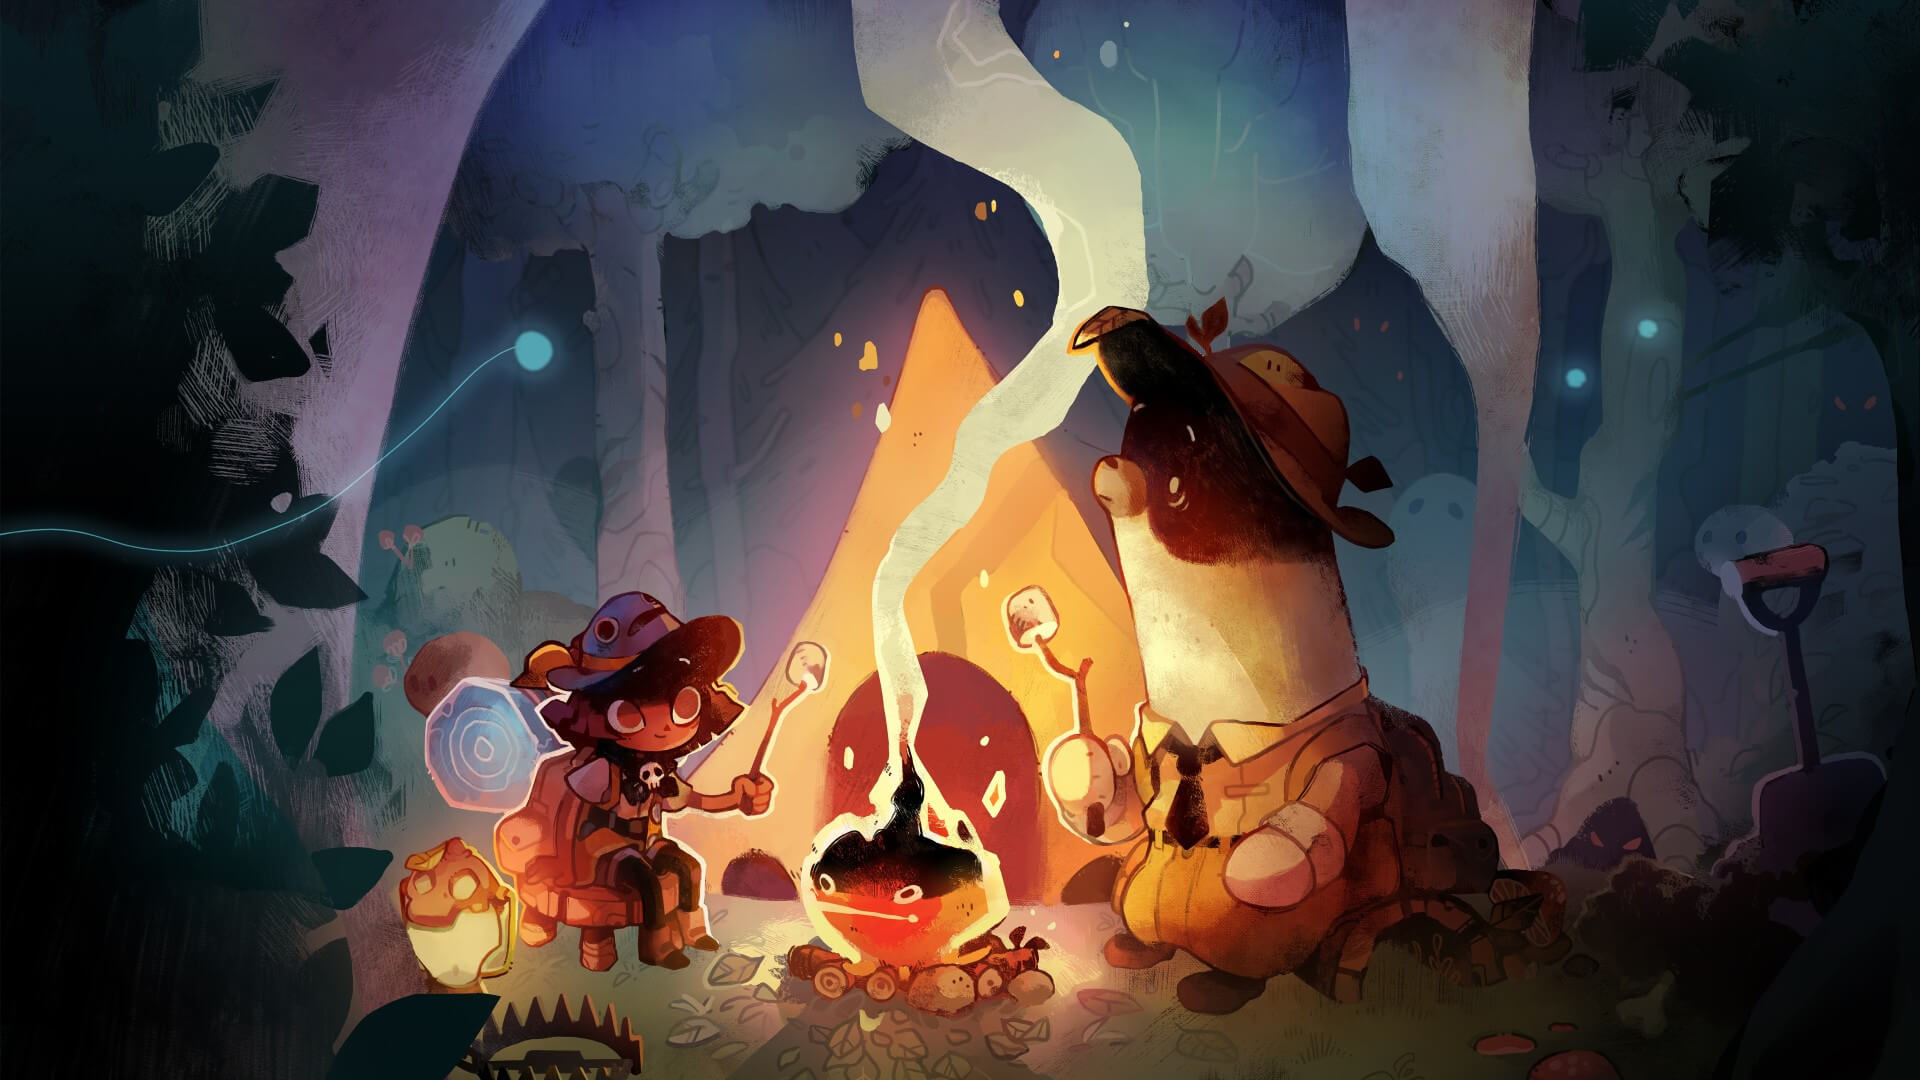 Cozy Grove Review: Your Daily Dose of Cute, Calm, and Colorful